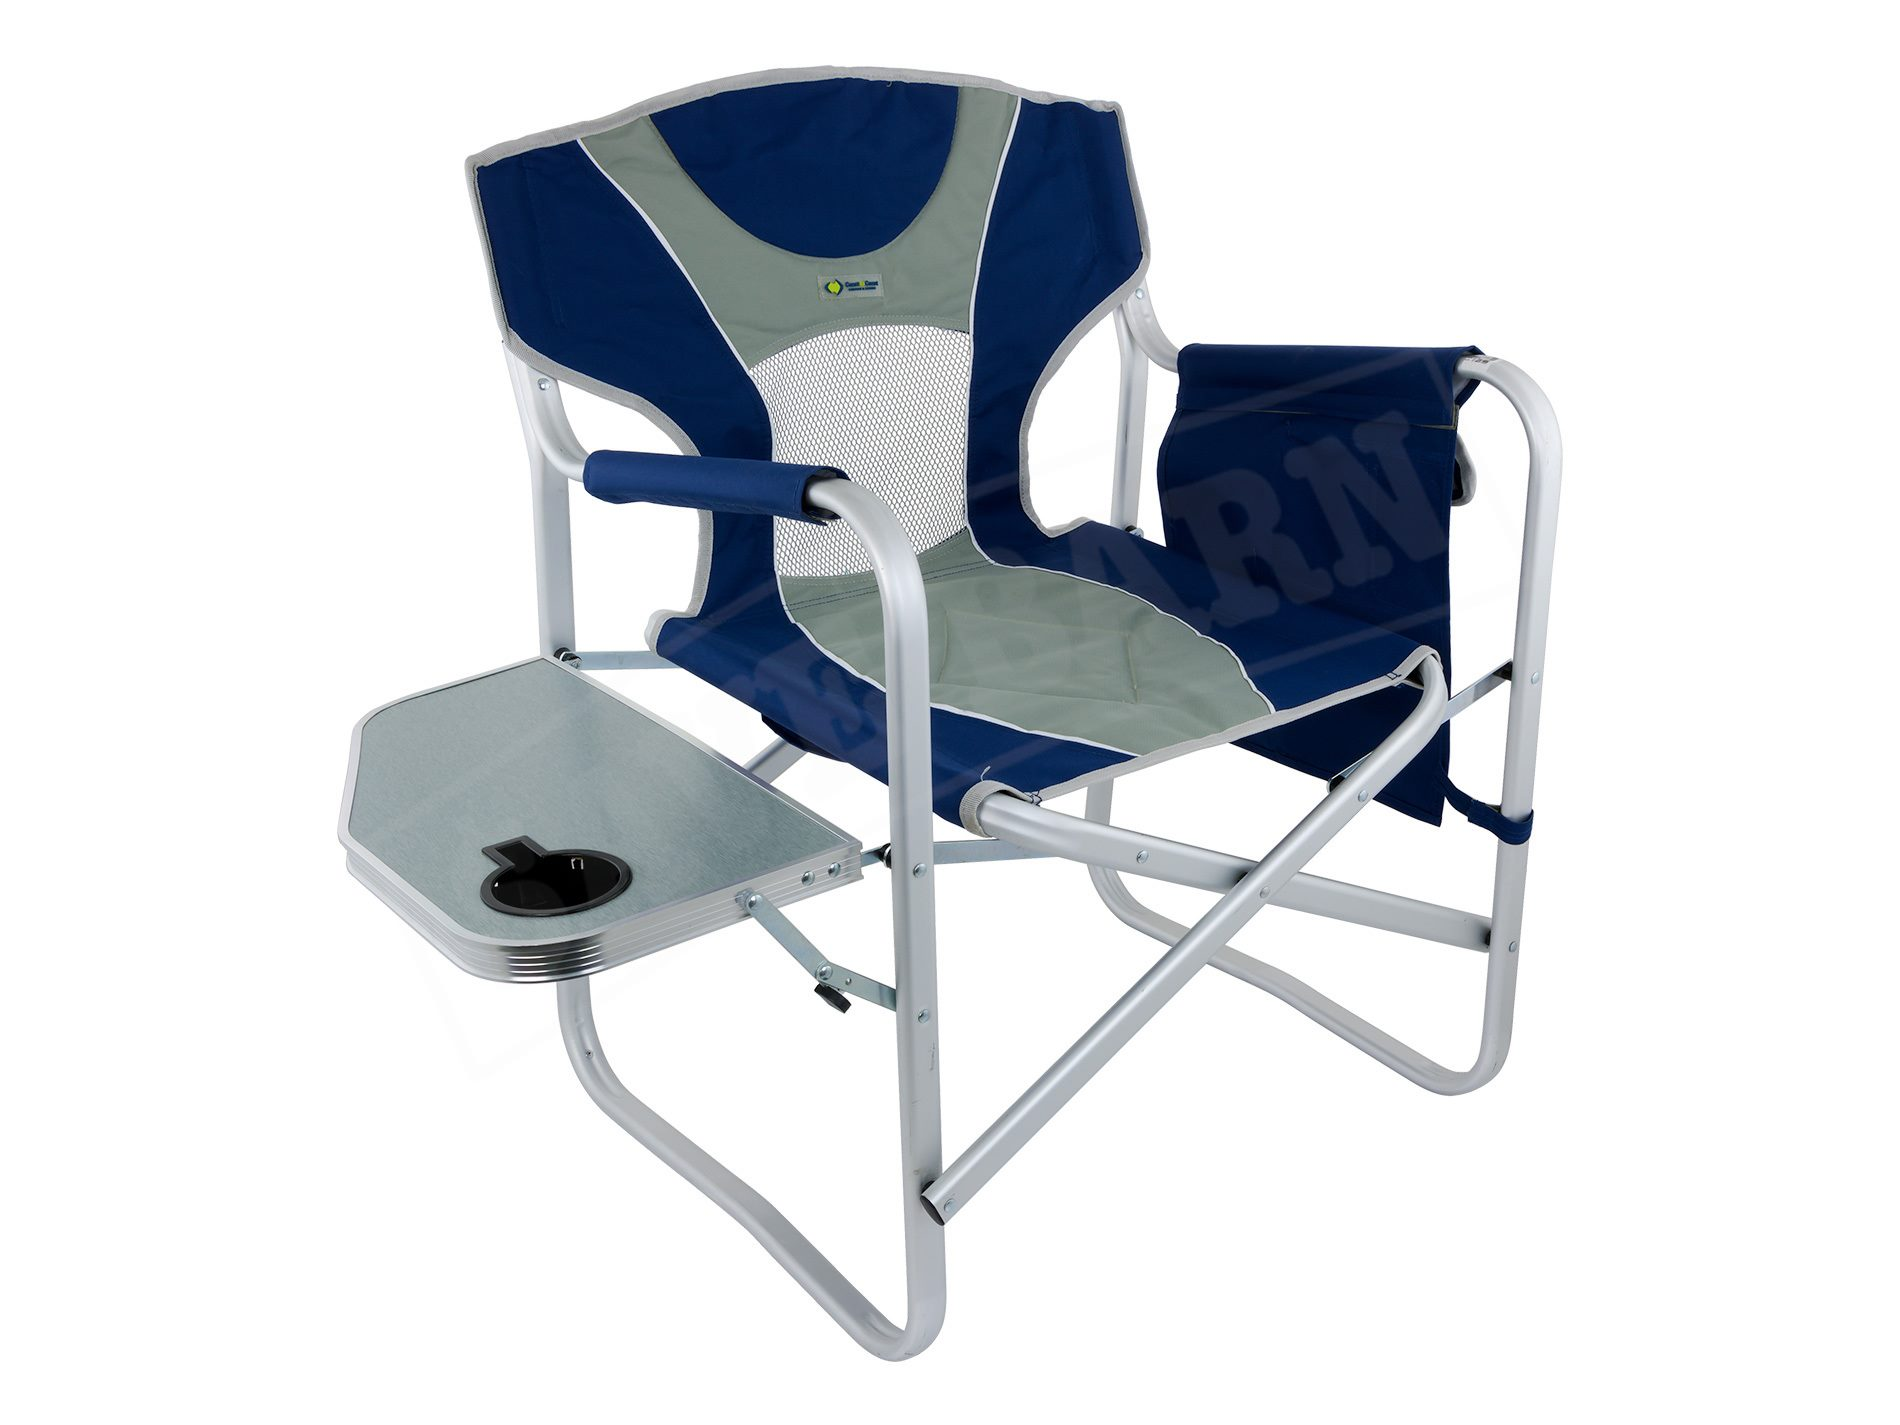 Folding Director Chair Director Chair Folding Camp Chair With Arm Rest Cooler Compartment Blue Grey